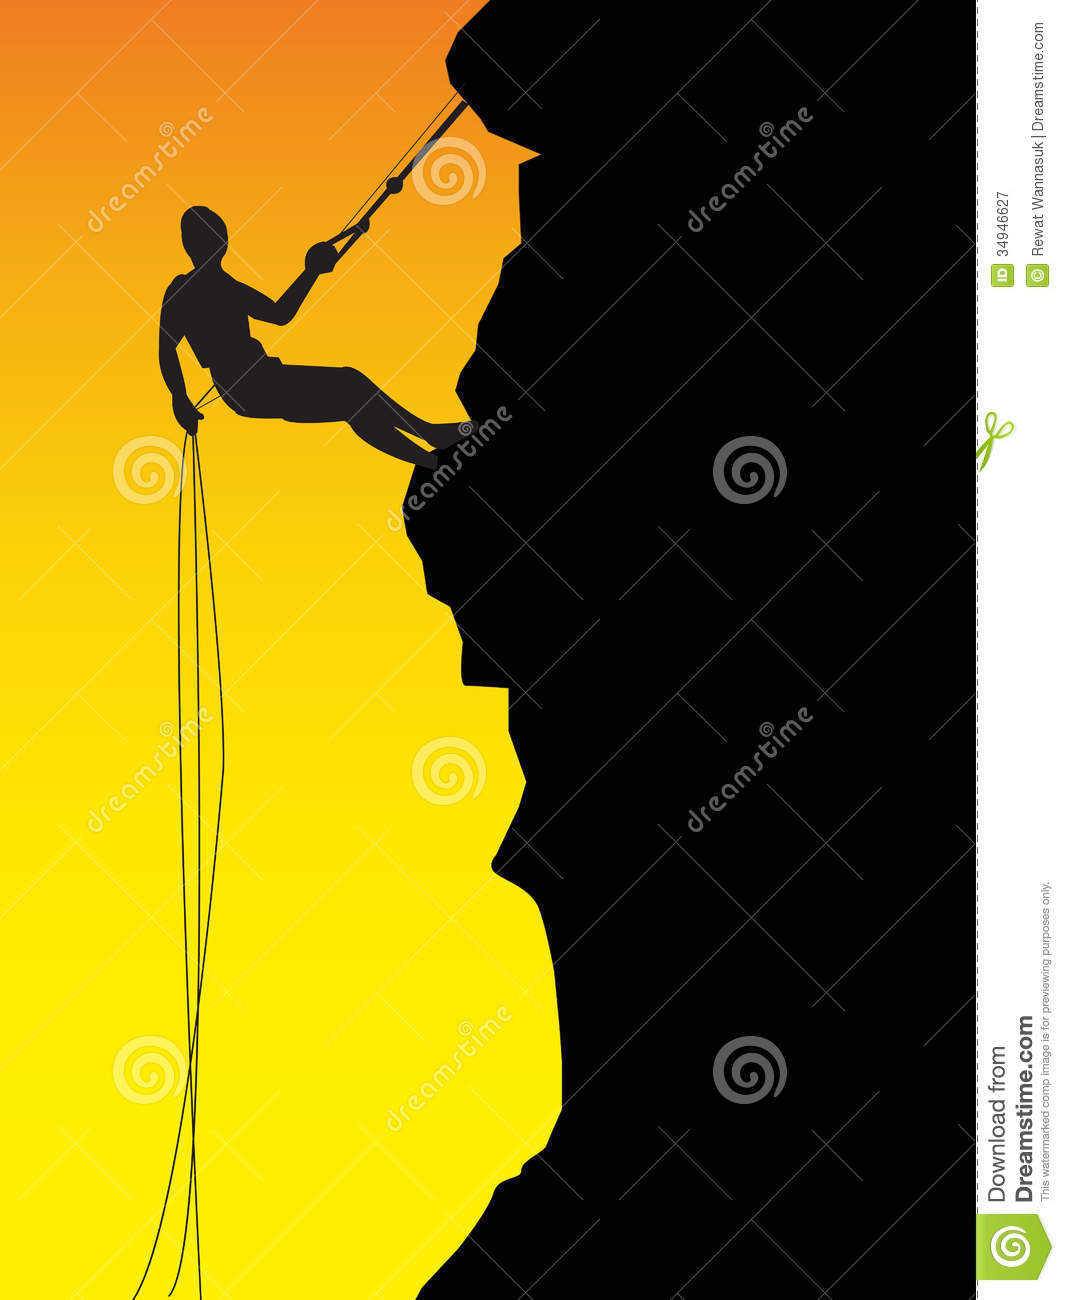 Free clipart man climbing mountain.